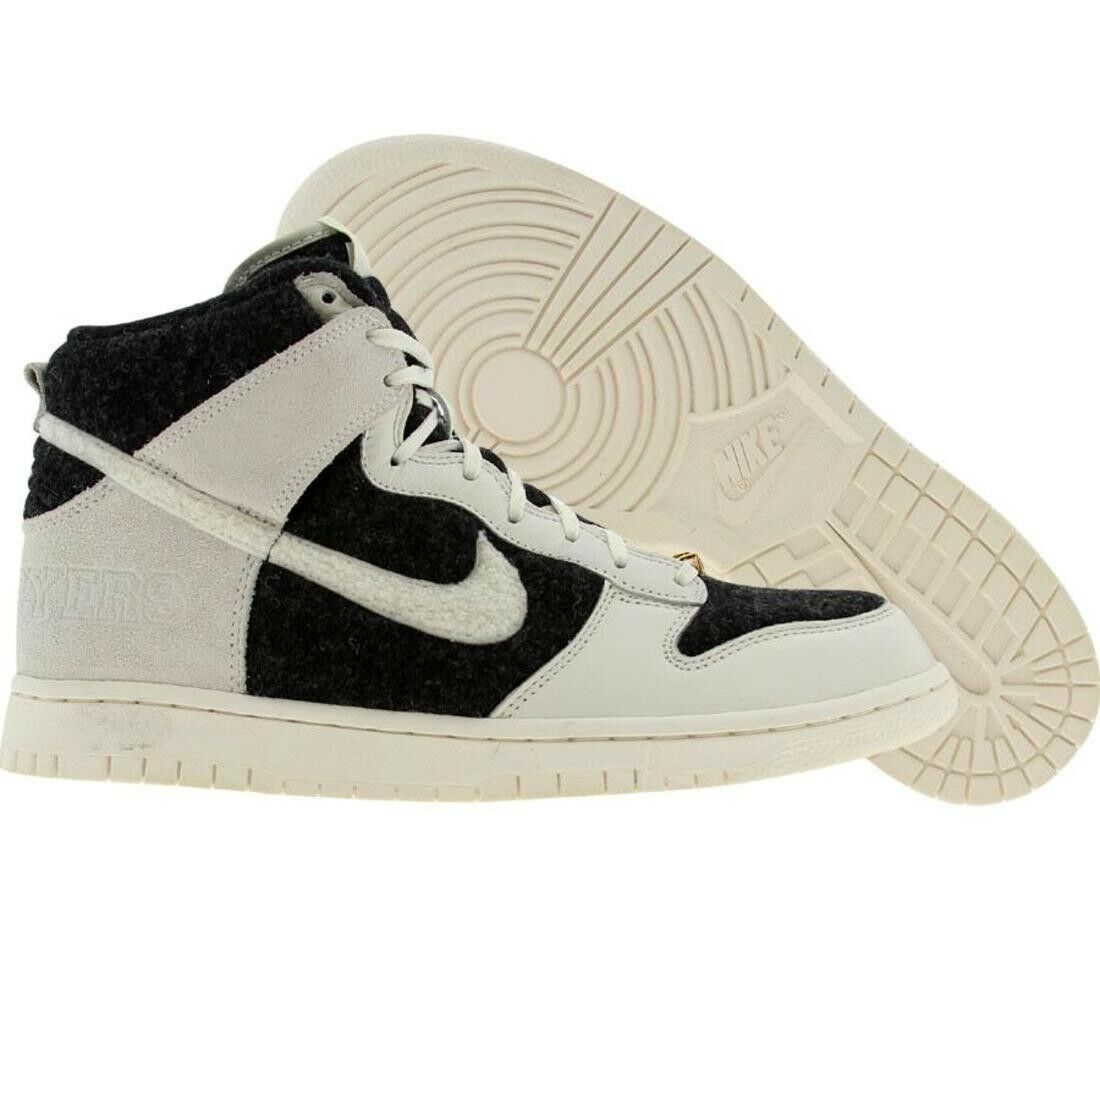 315670-011 Nike Dunk High  300 Tier 0  Destroyer Pack  (charcoal / sail / sail)